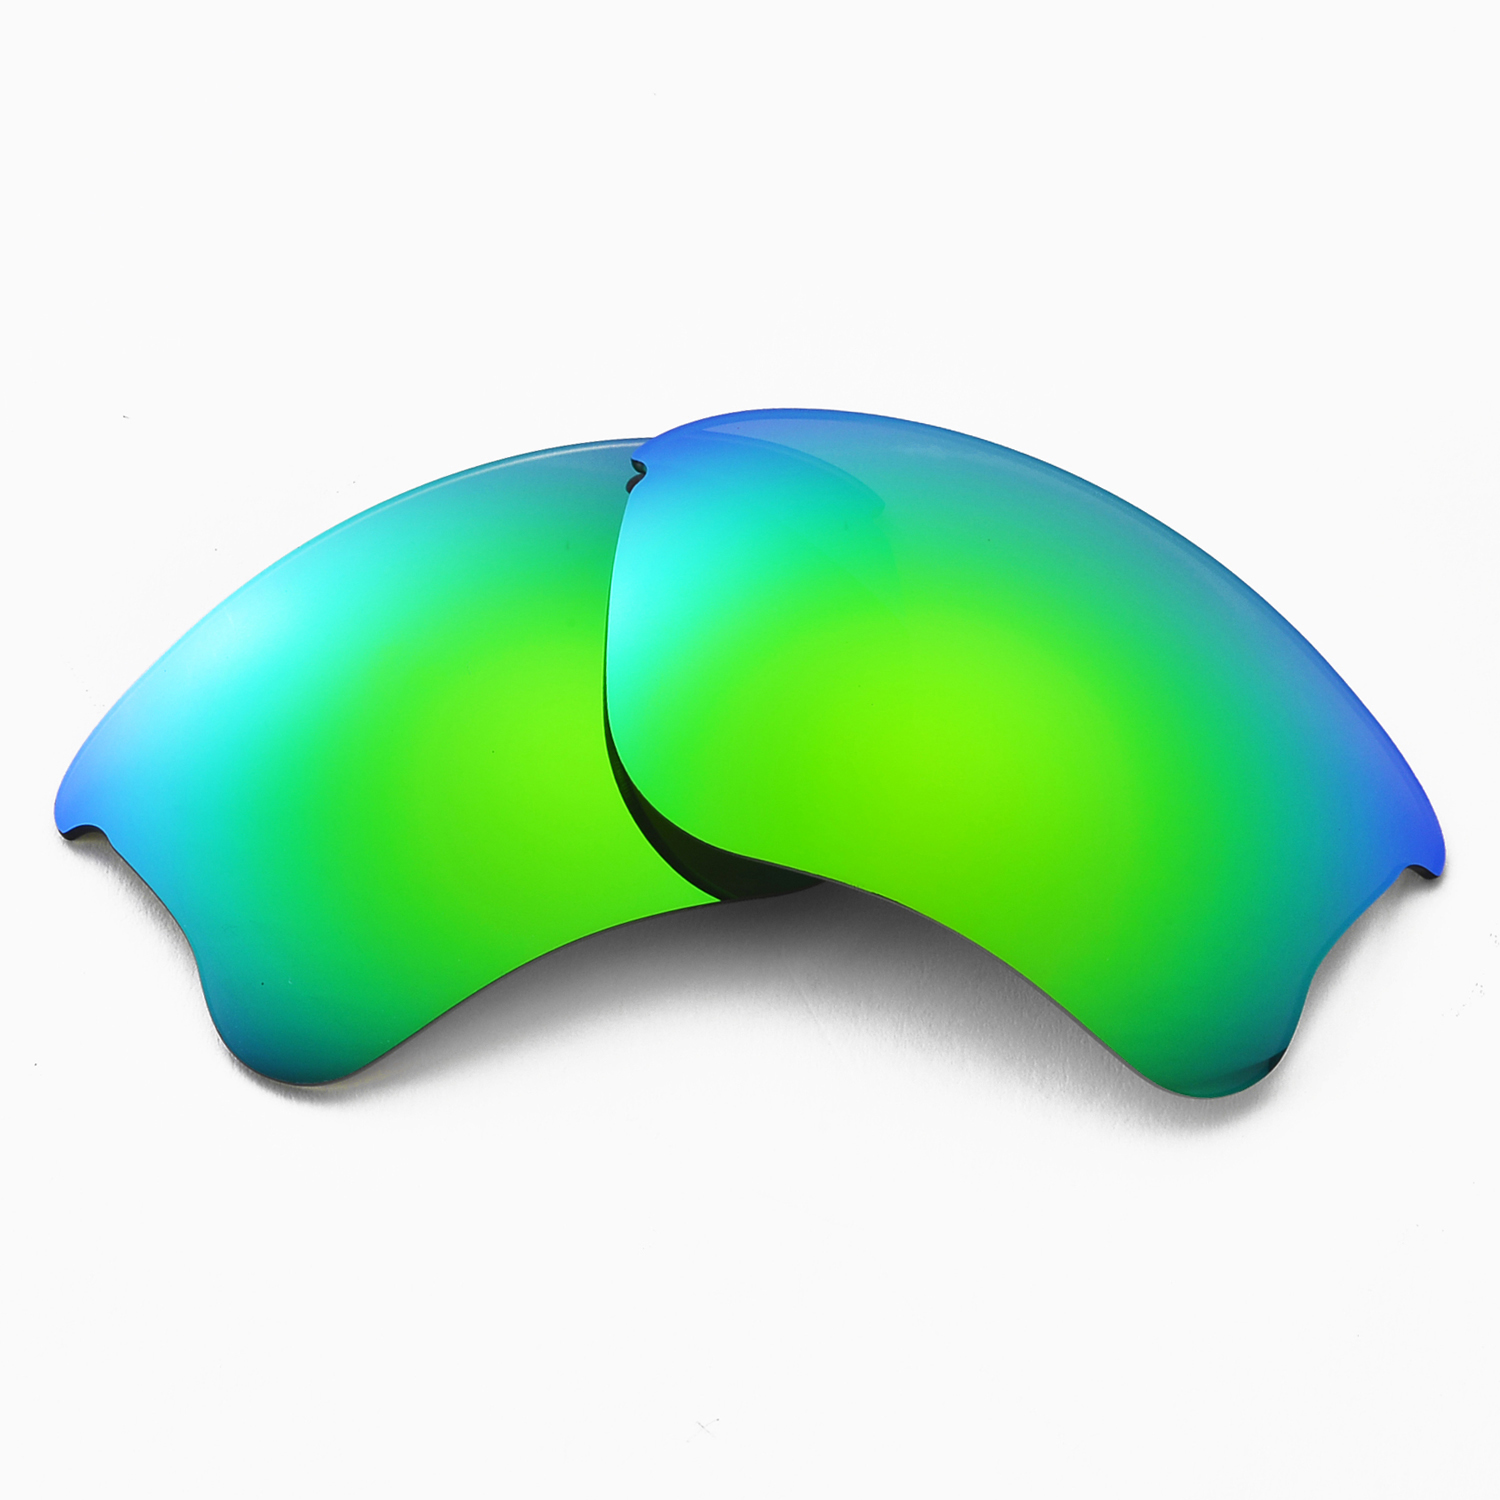 Wl Polarized Emerald Replacement Lenses For Oakley Flak